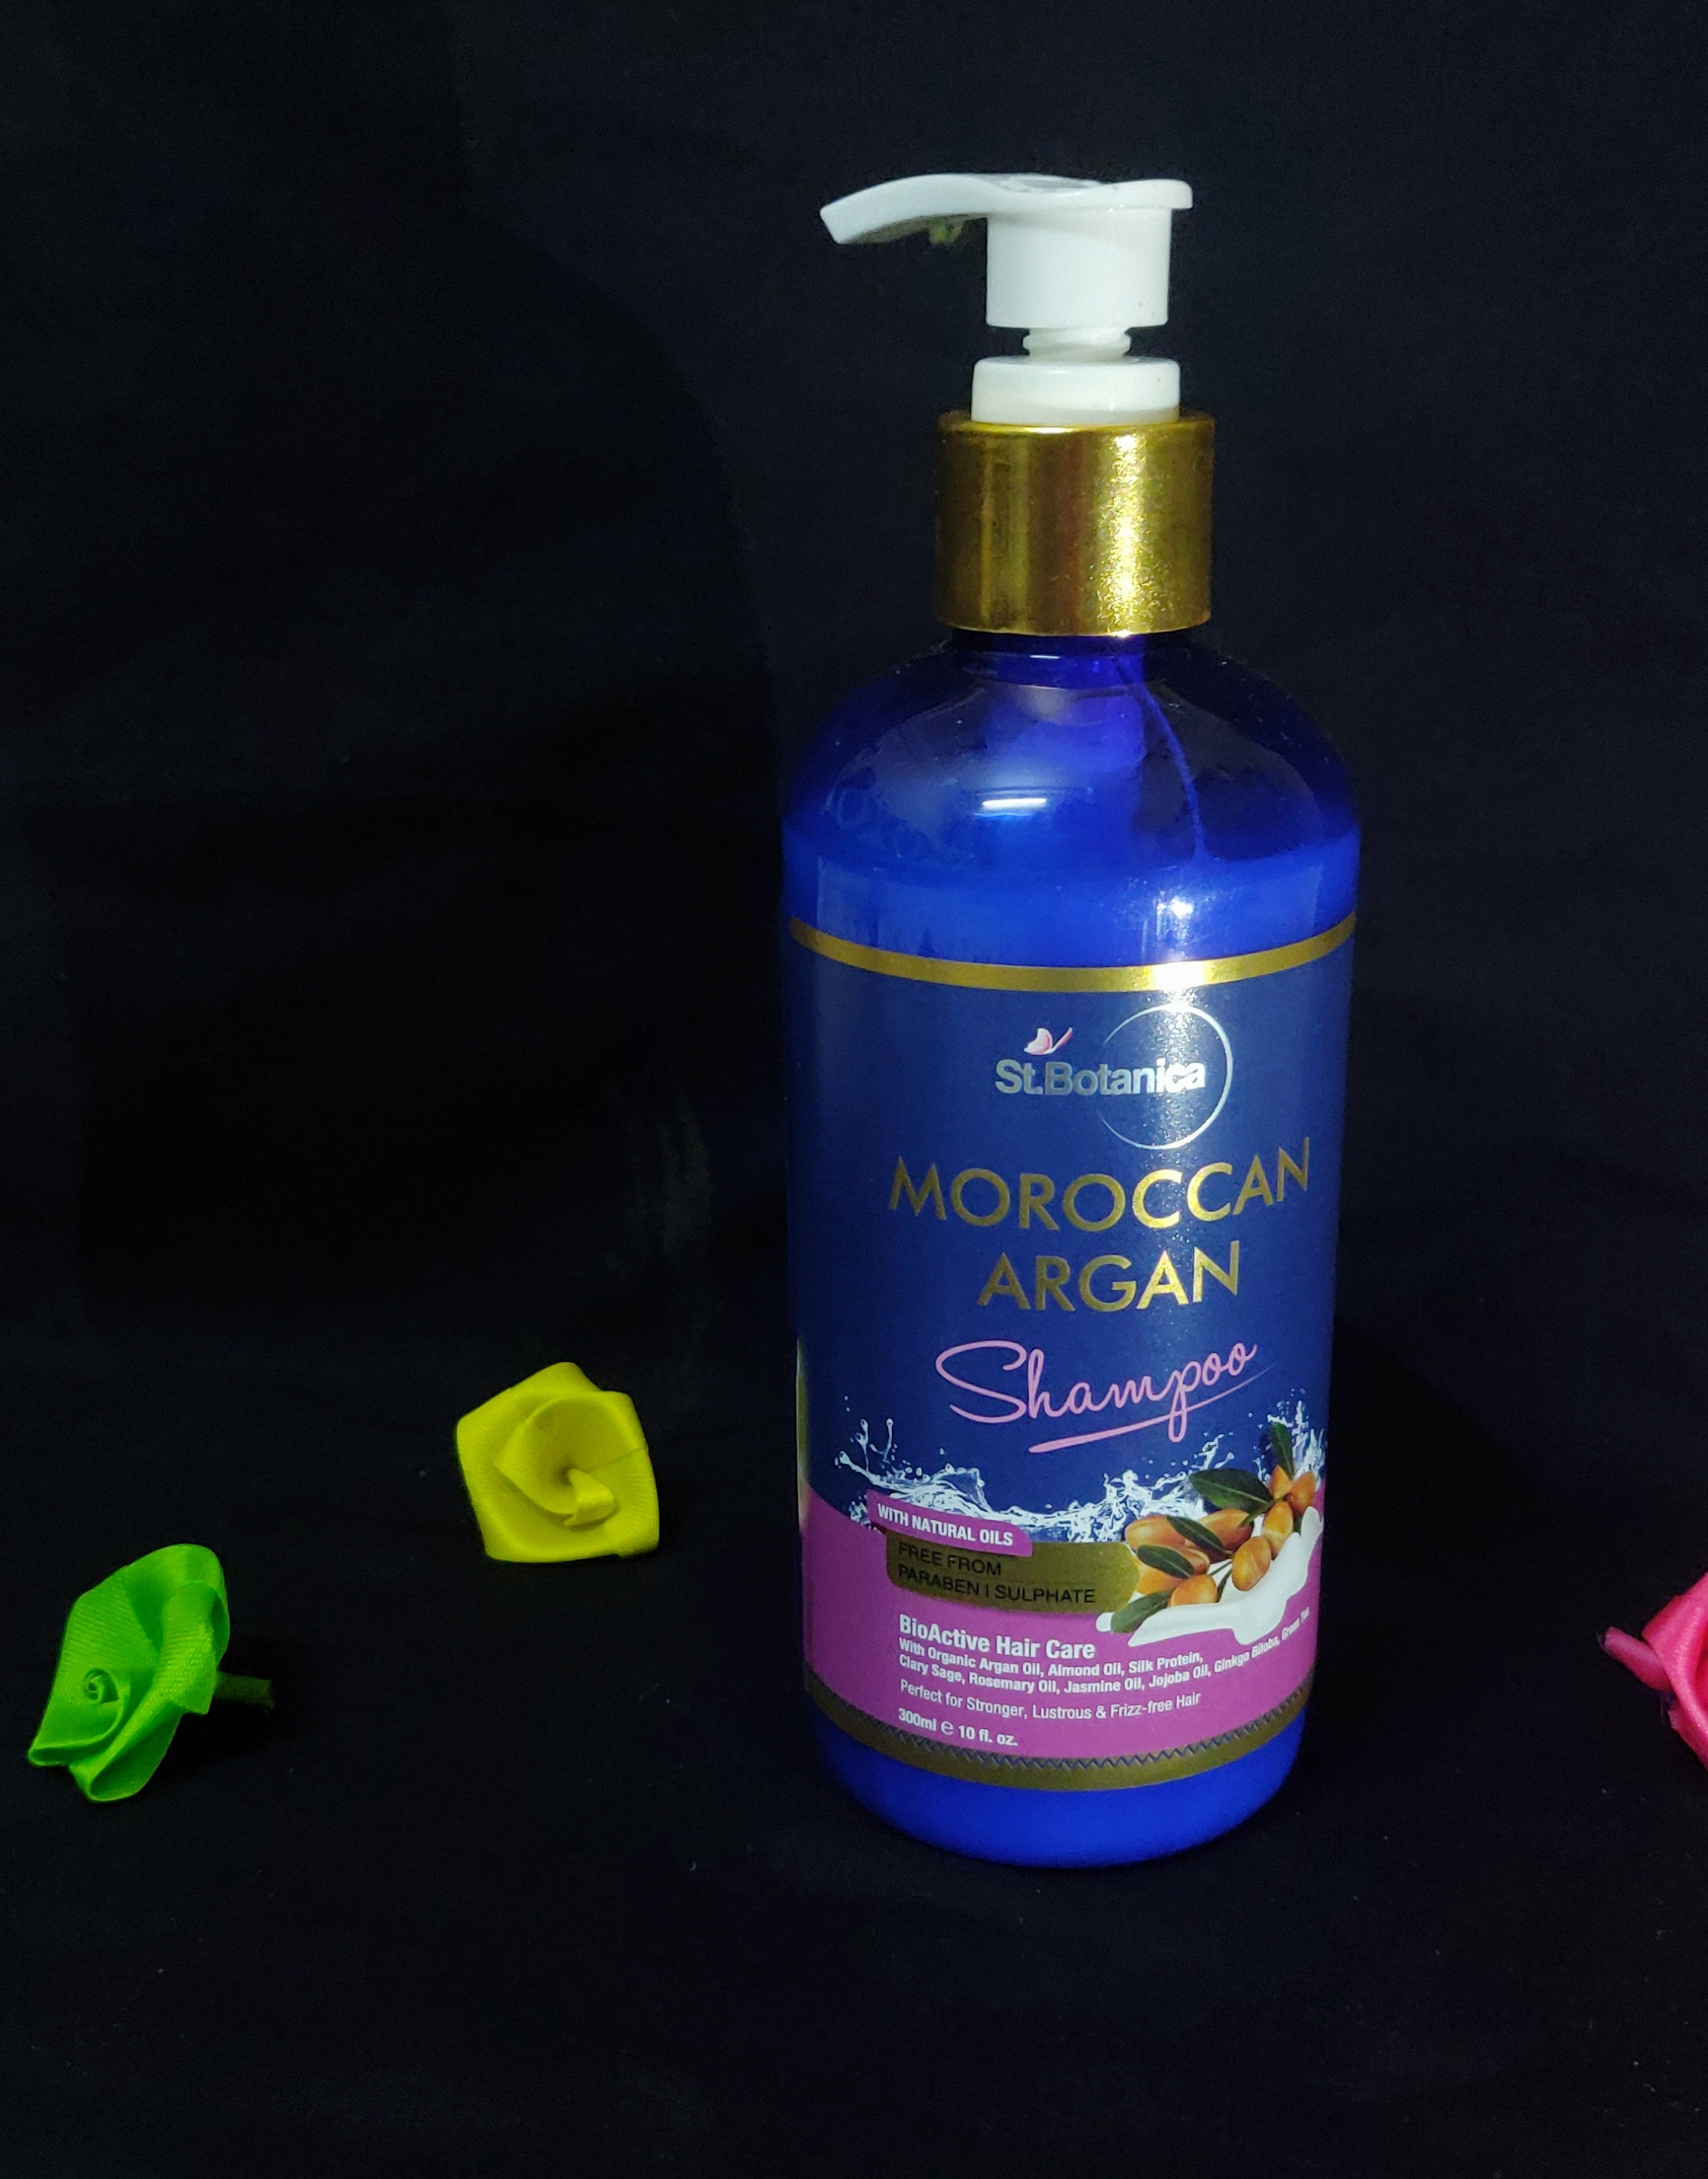 StBotanica Moroccan Argan Hair Shampoo-Perfect product for Frizzy Hair-By angs-1